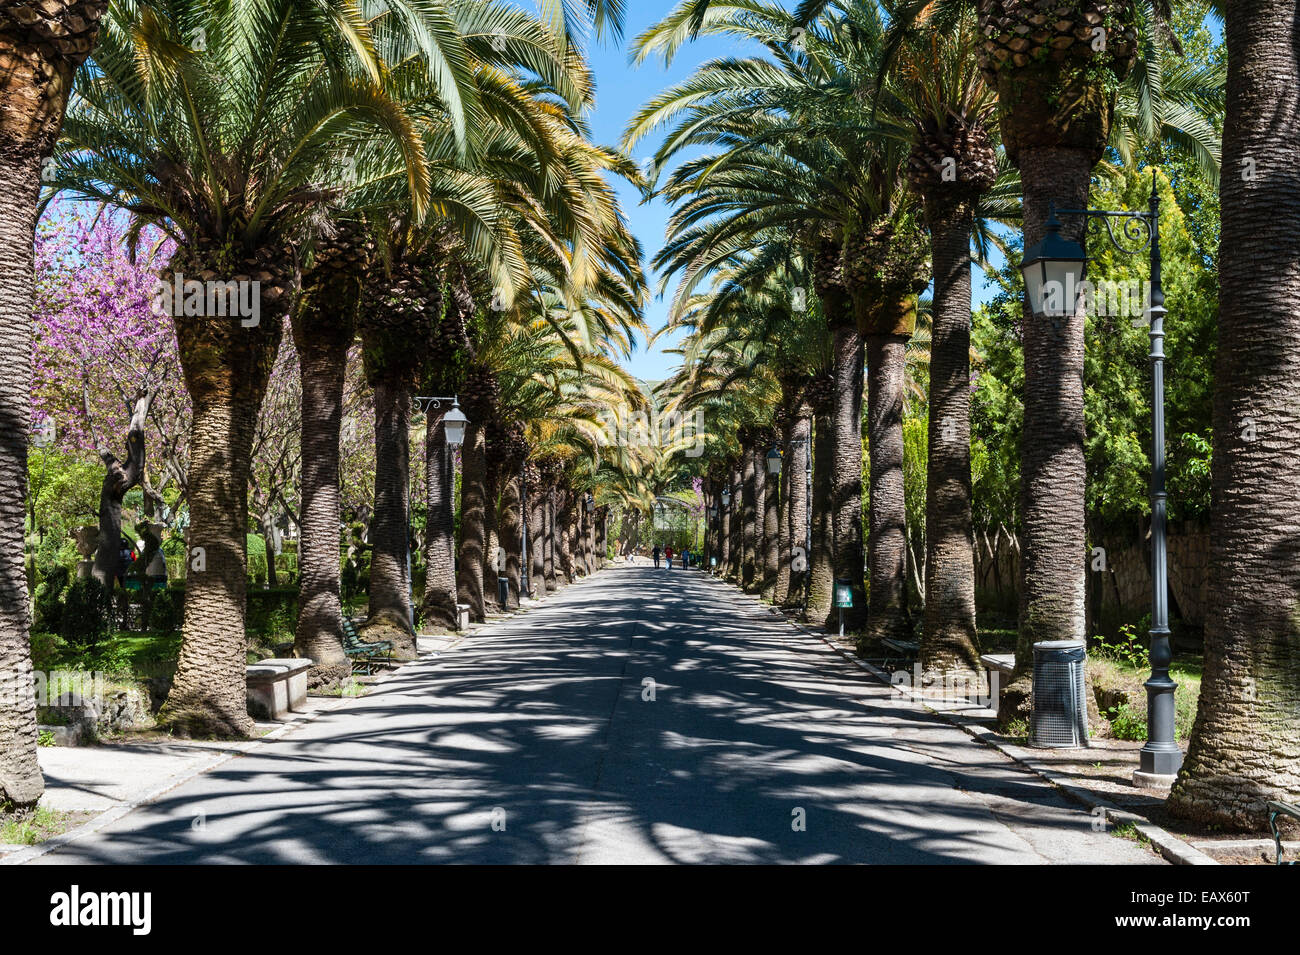 Ragusa, Sicily, Italy. The Giardino Ibleo is the name given to the oldest public gardens in the town - Stock Image